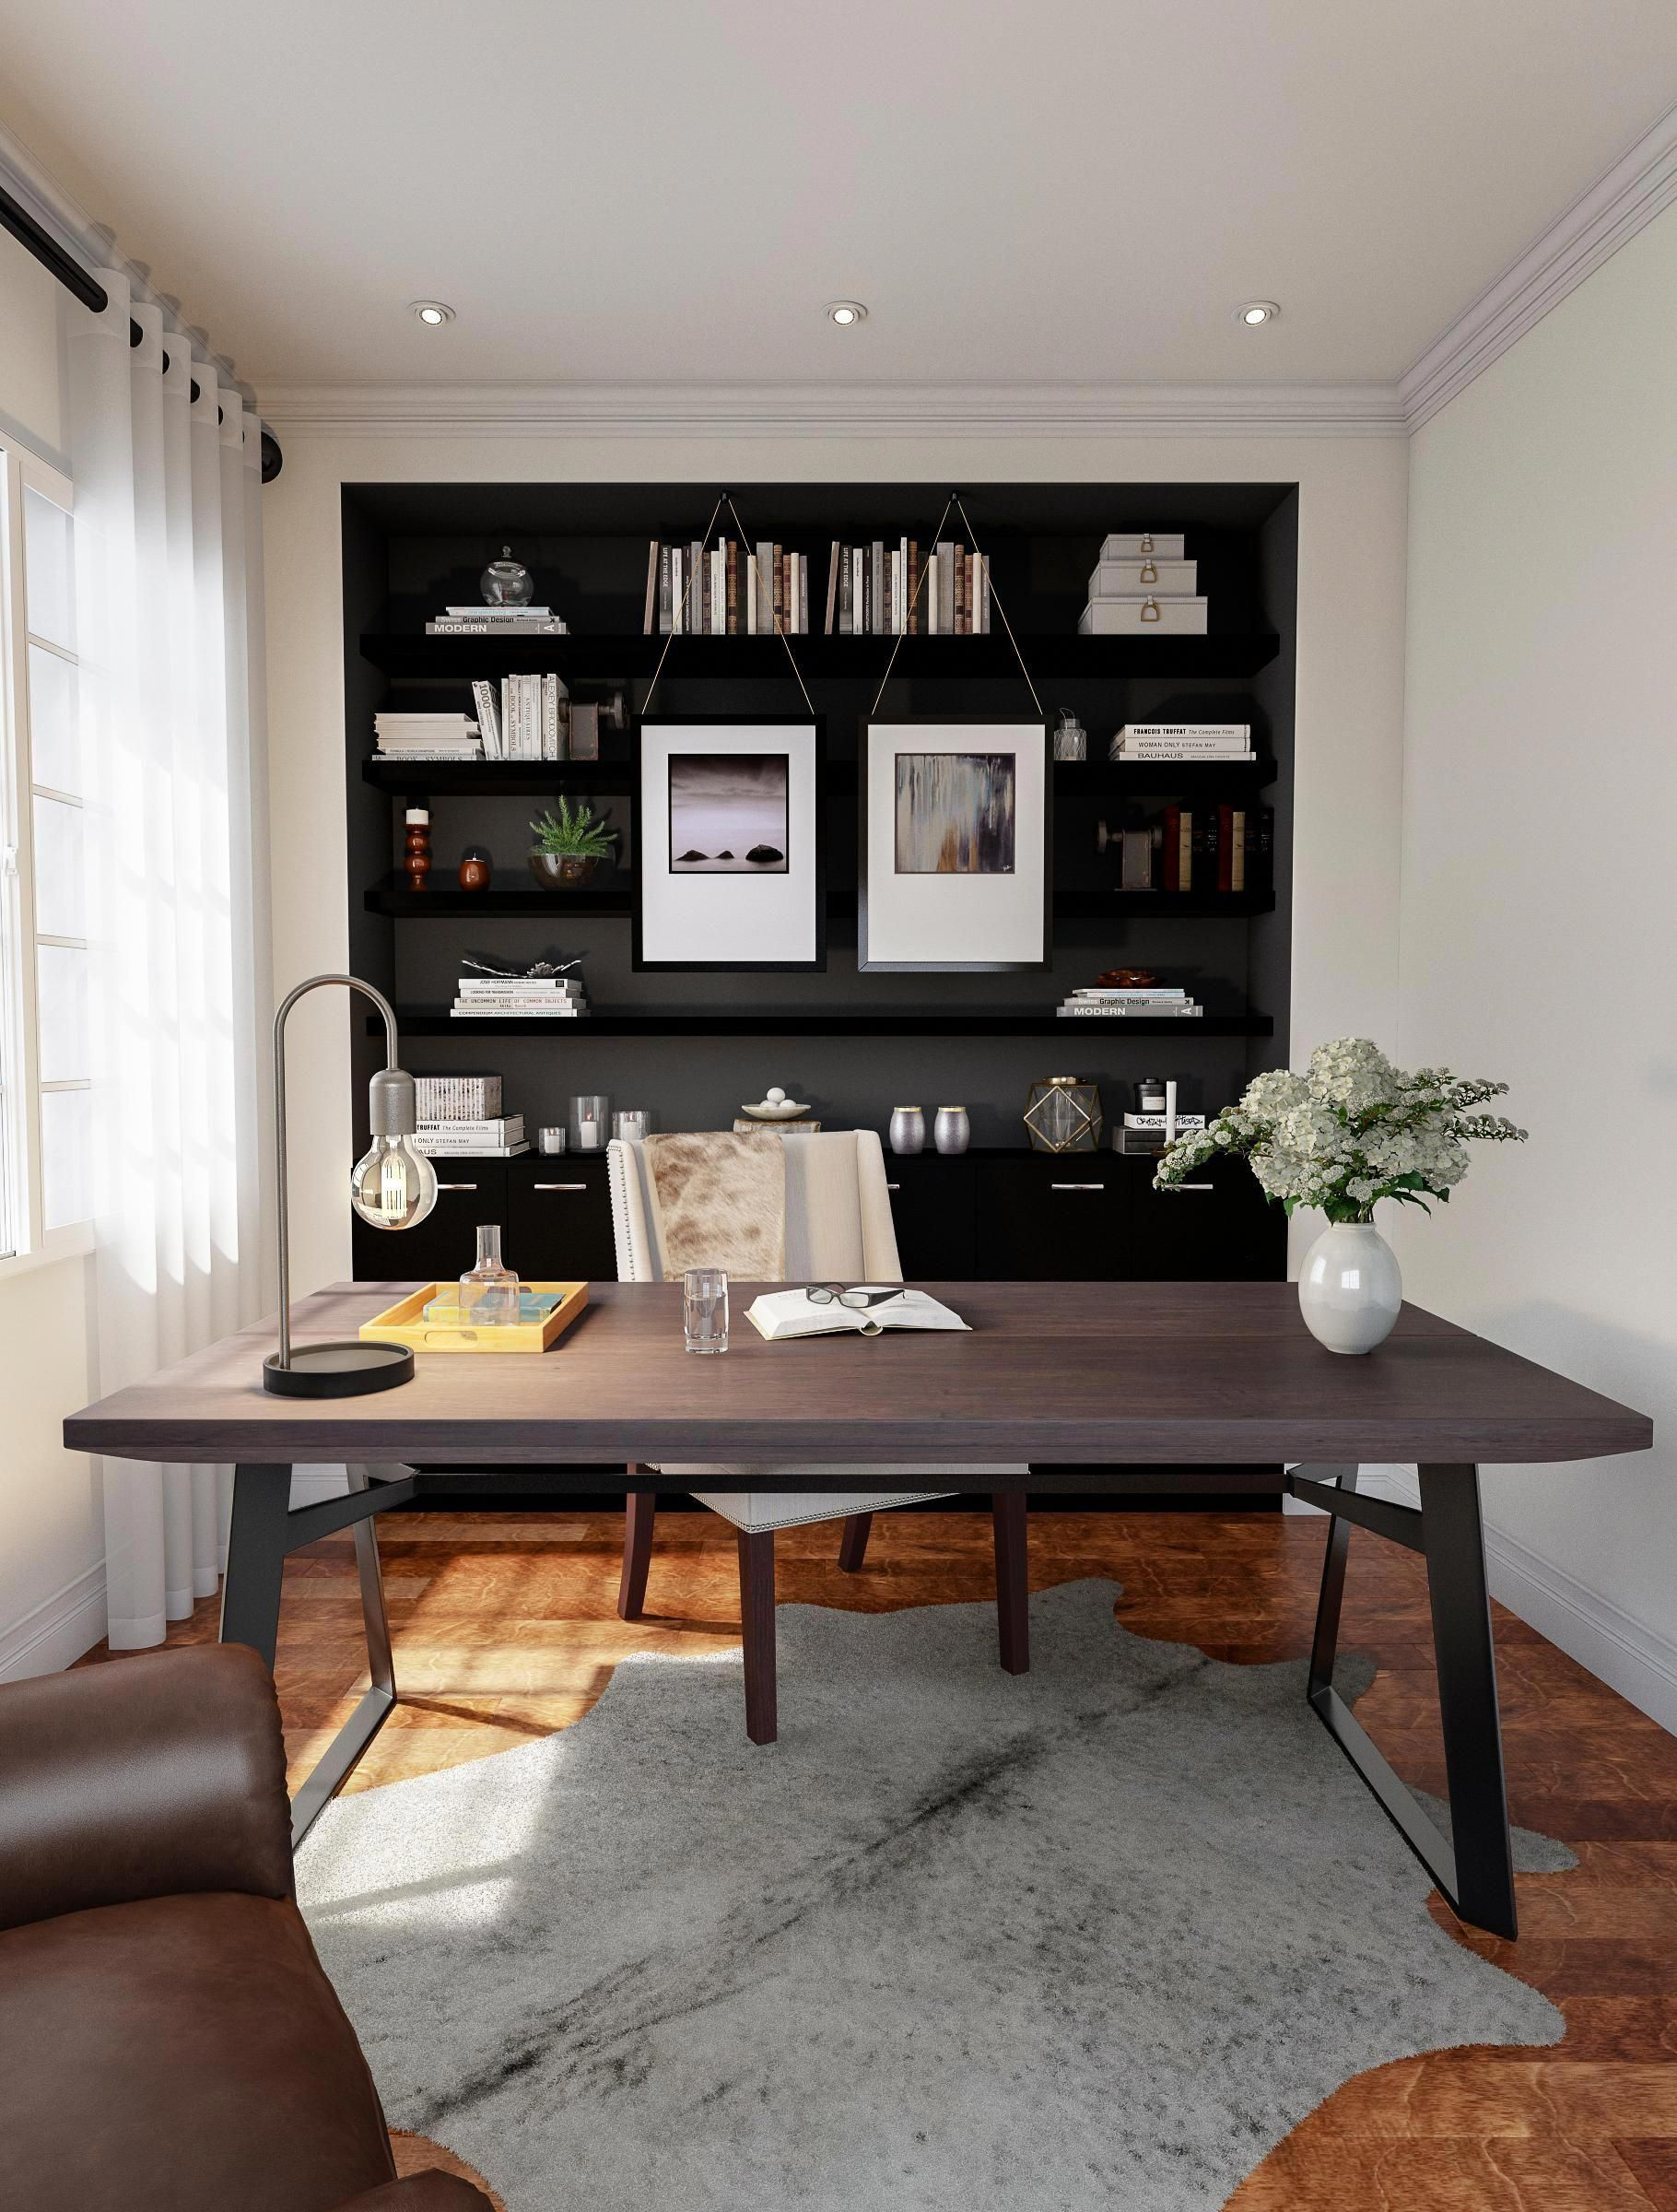 Creative Office Design Home And Decor Ideas For Decorating My Office 20190711 Home Office Furniture Modern Home Office Home Office Decor